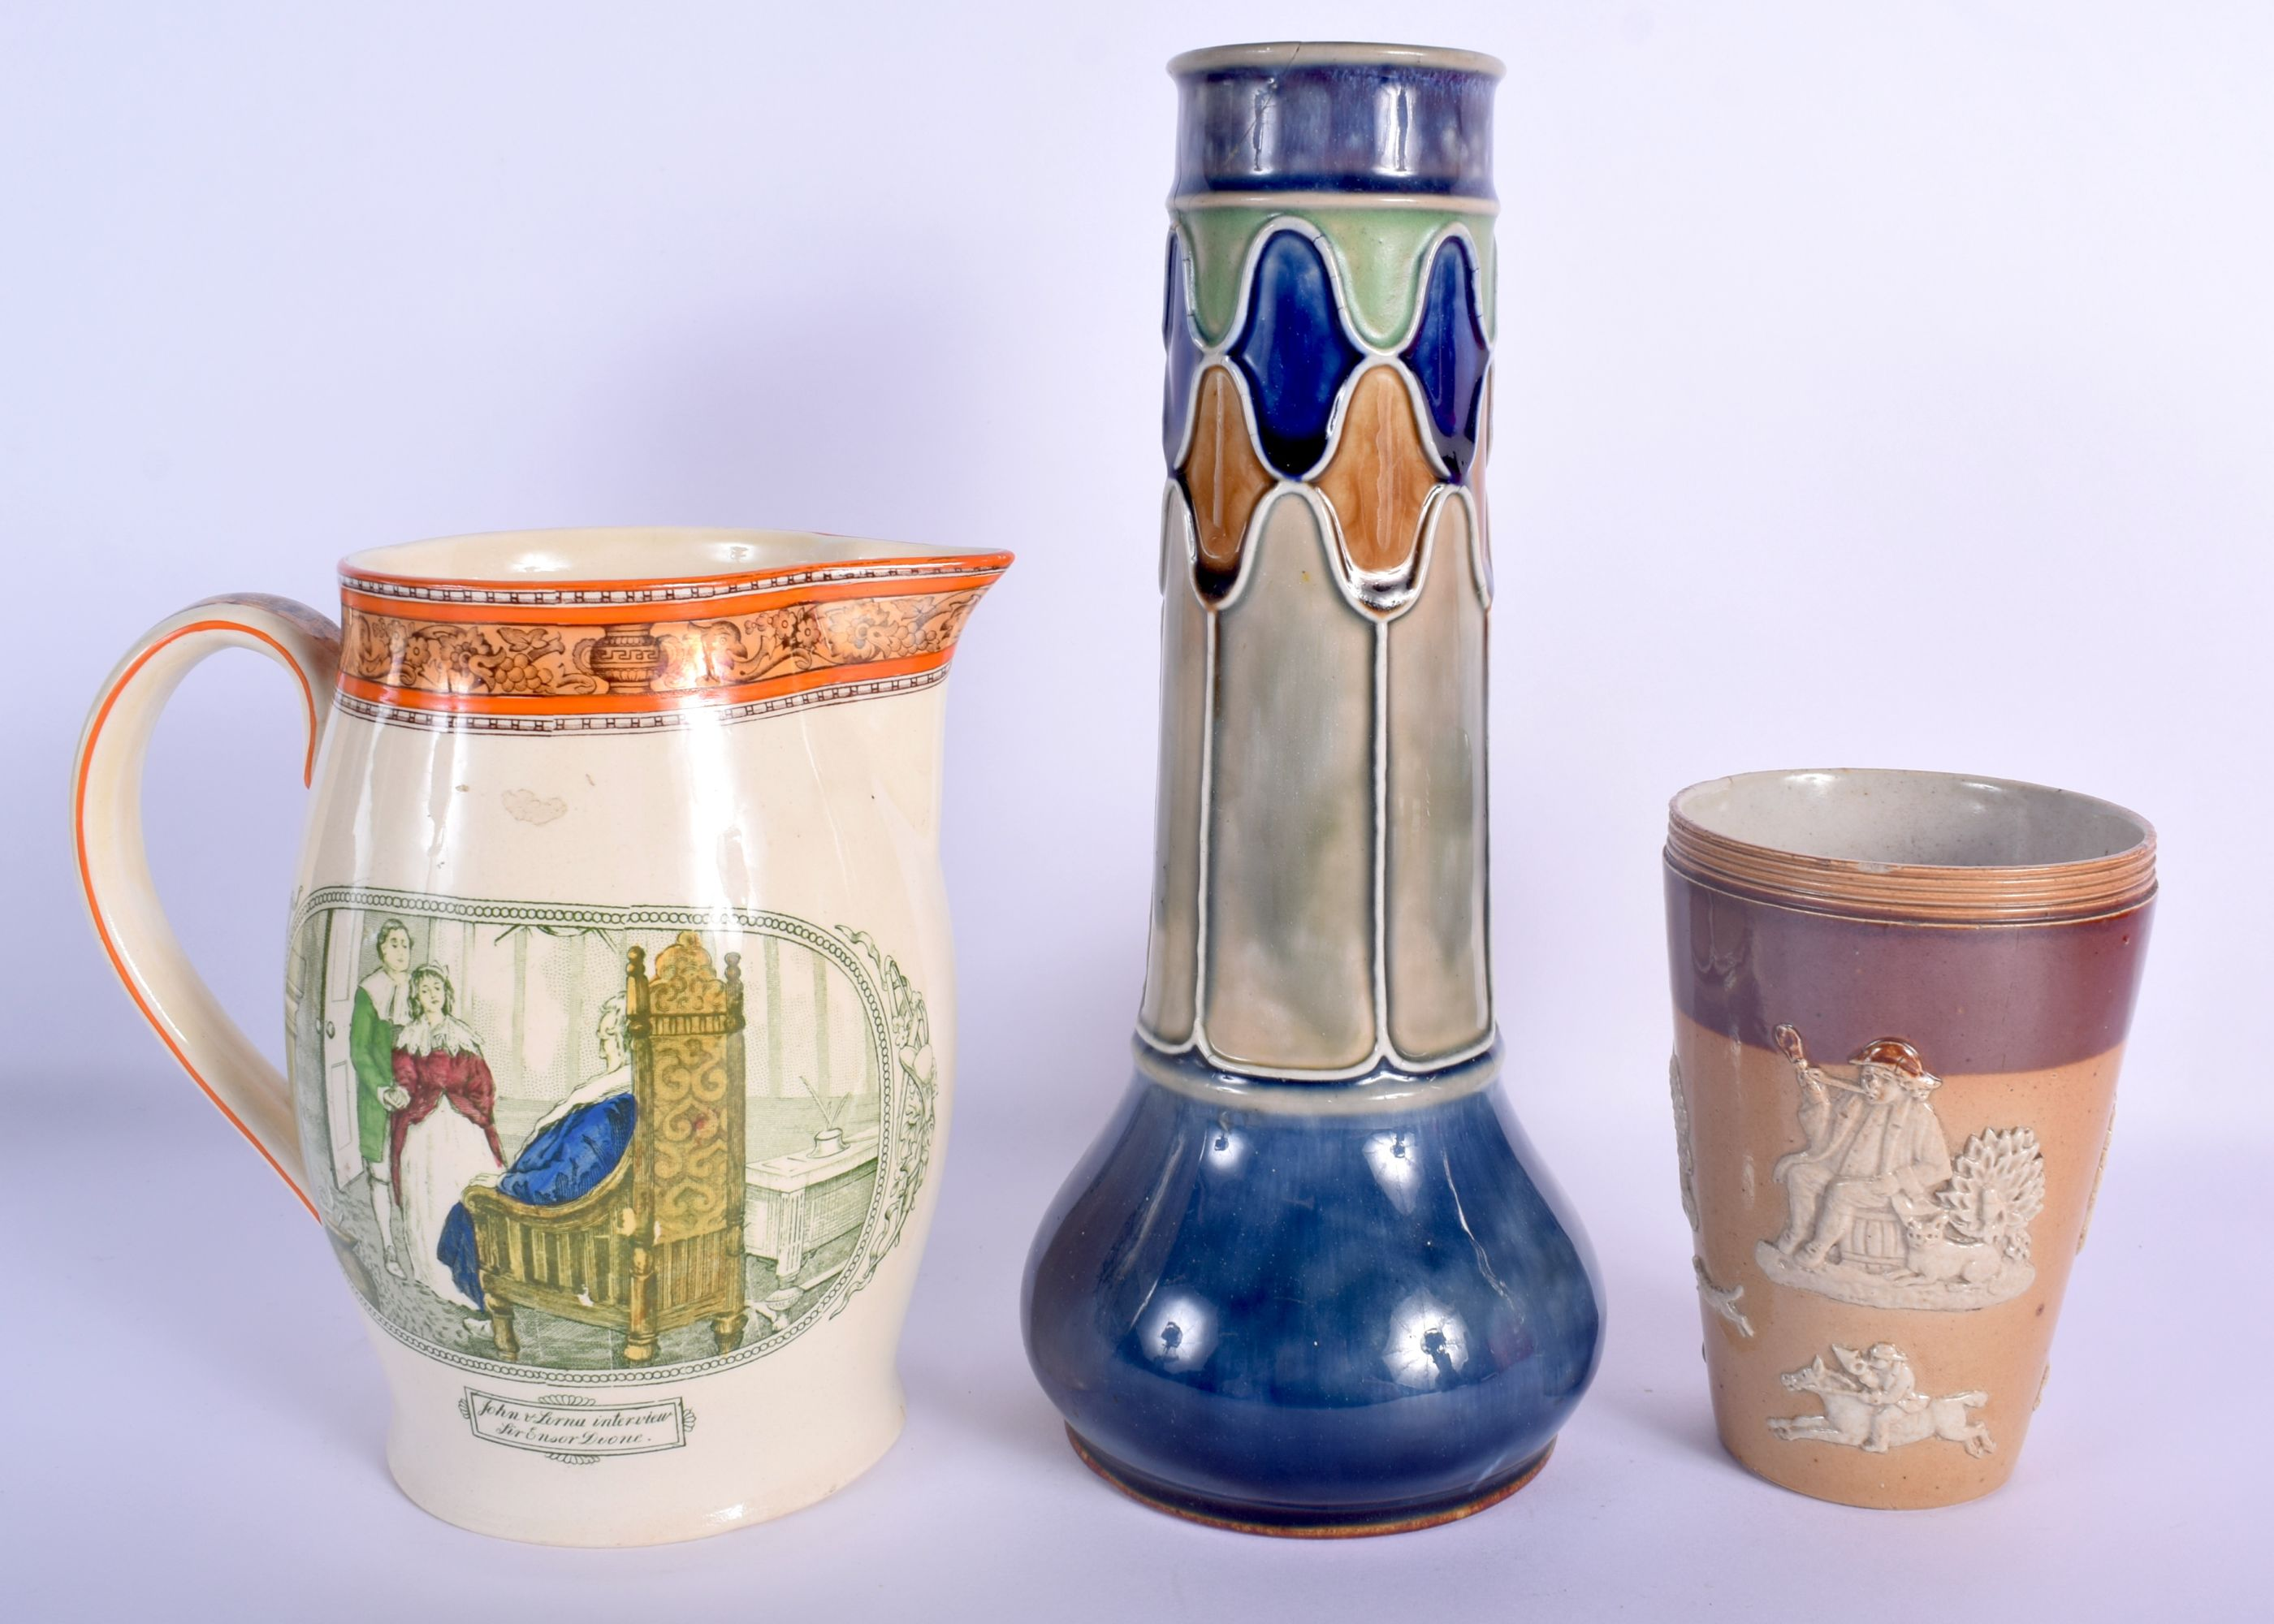 AN ANTIQUE DOULTON STONEWARE BEAKER together with another Doulton vase & a rare Adams jug. Largest 2 - Image 2 of 3